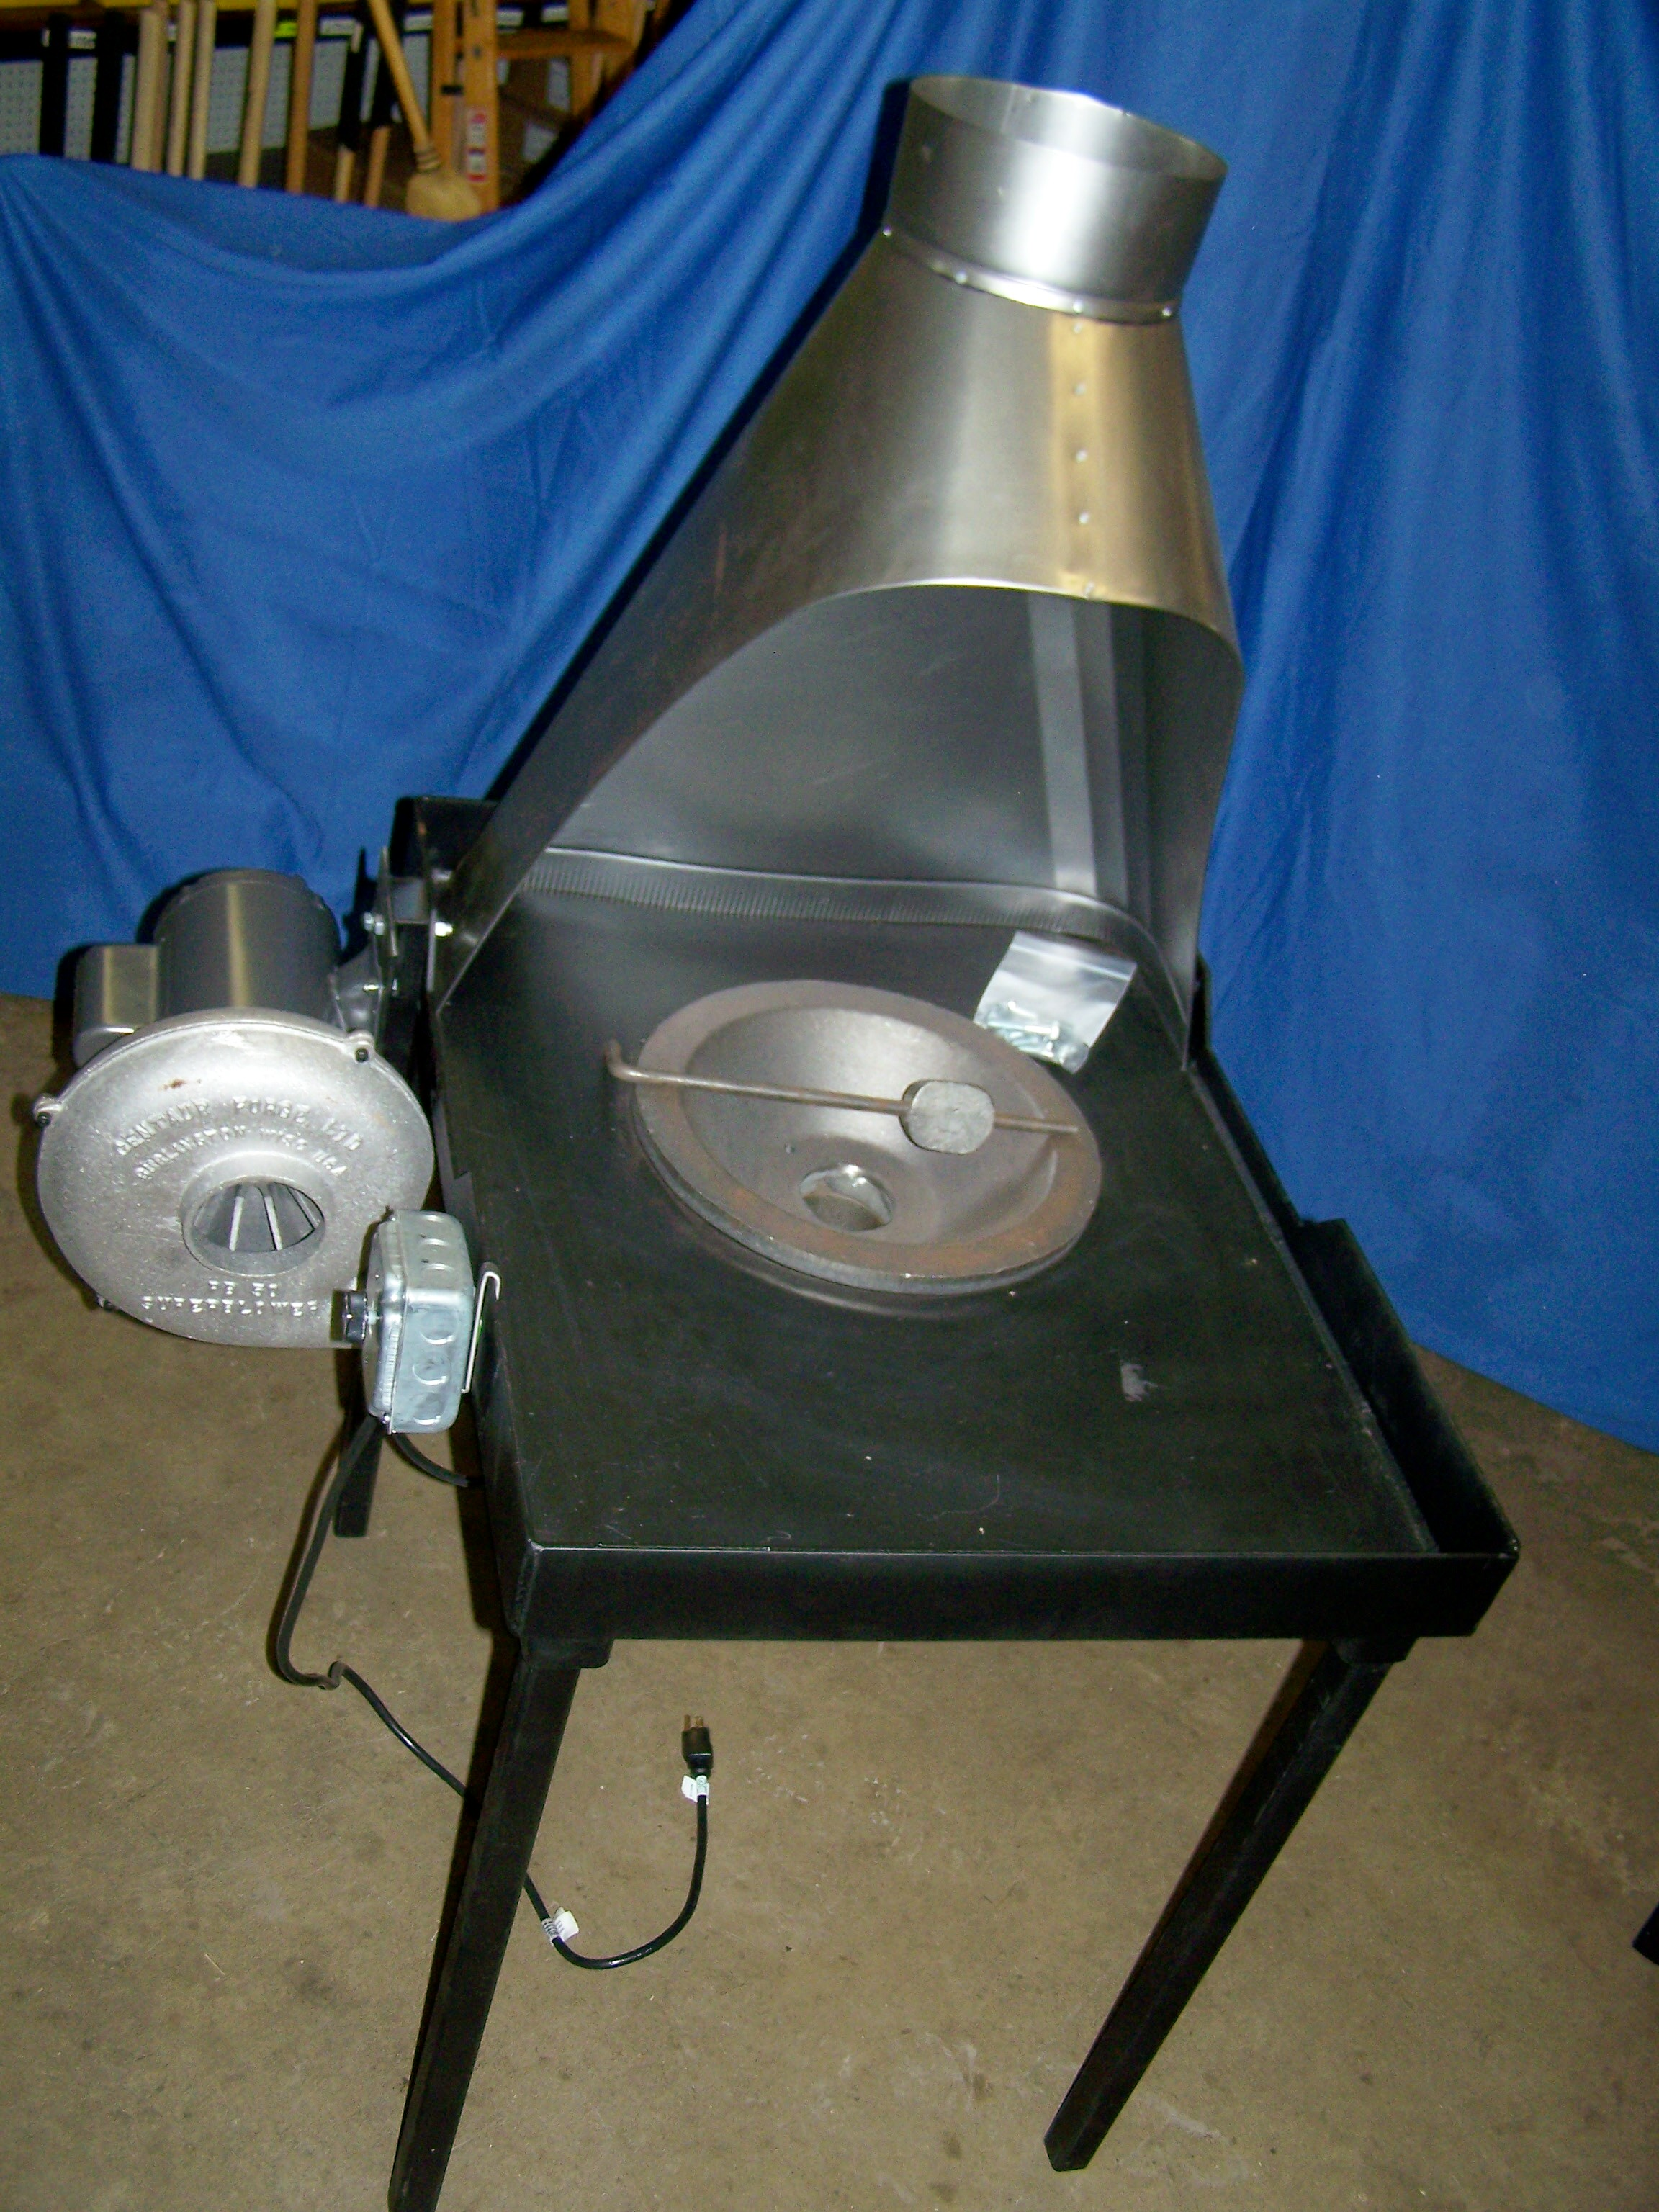 Centaur C37 Floor Model Coal Forge, Coke Firepot, Blower & Hood - Eligible for Free Shipping. See Home Page for details